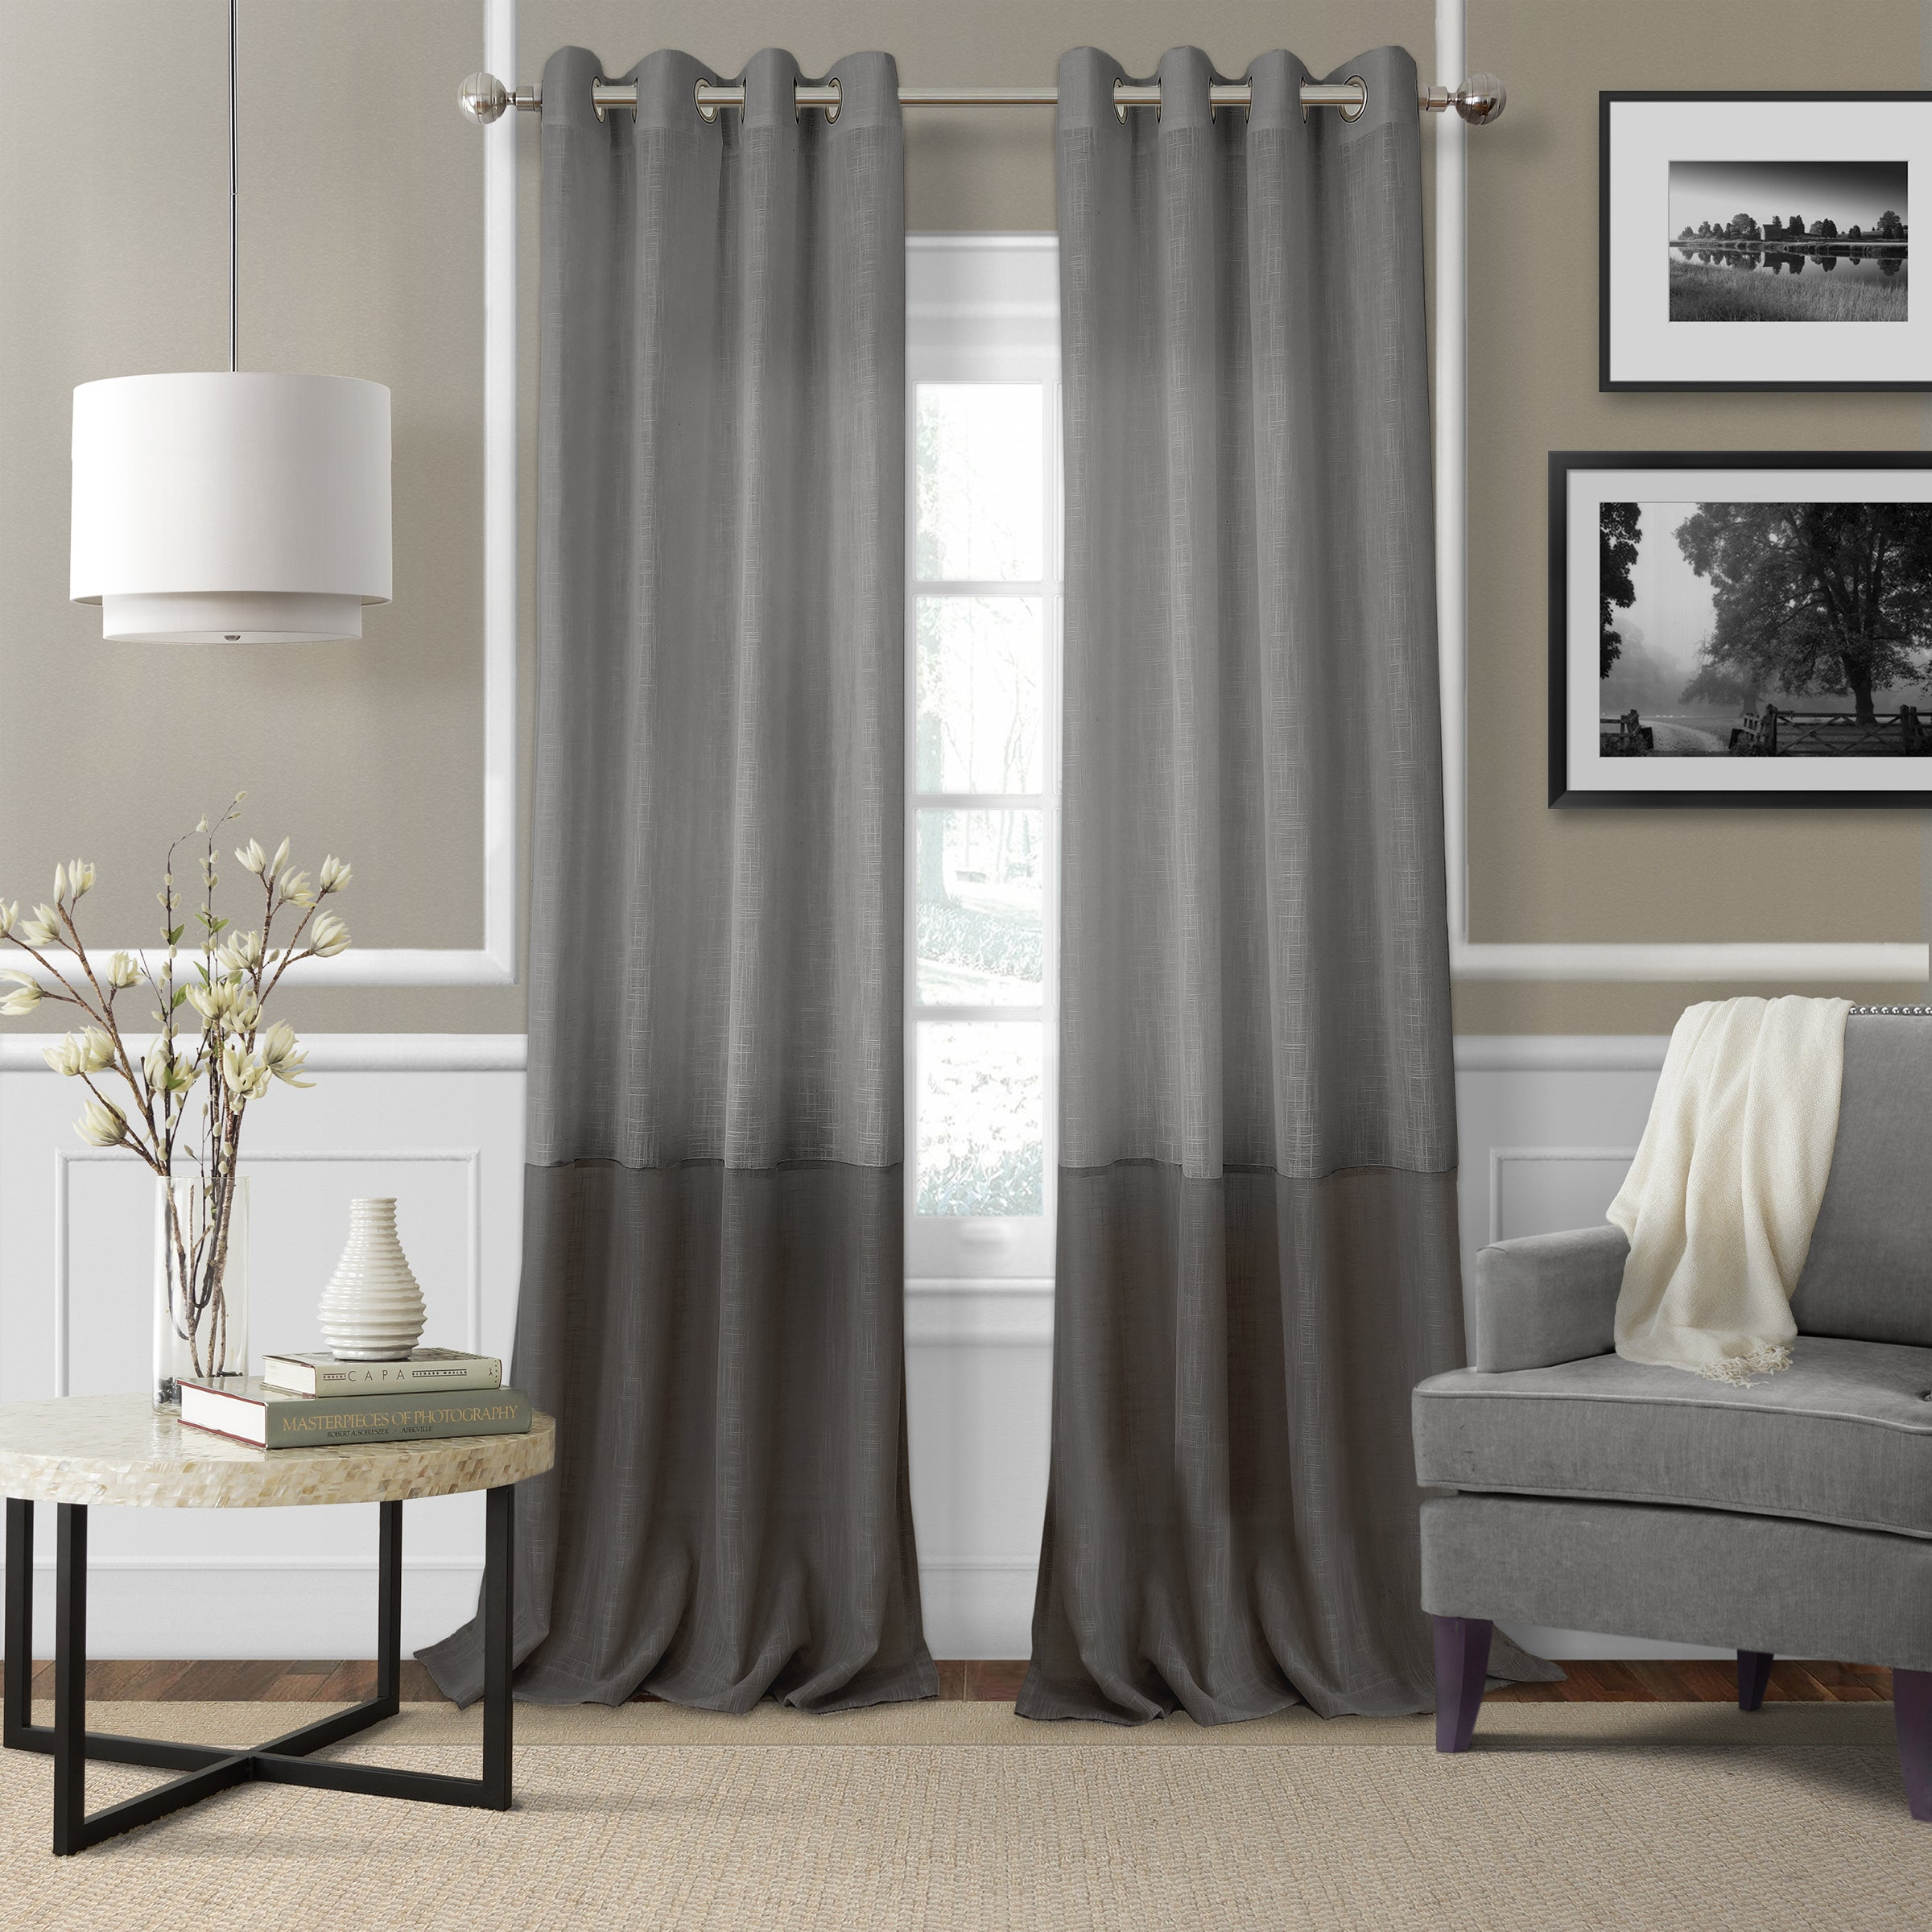 by panel curtain window itm grey eclipse blackout single